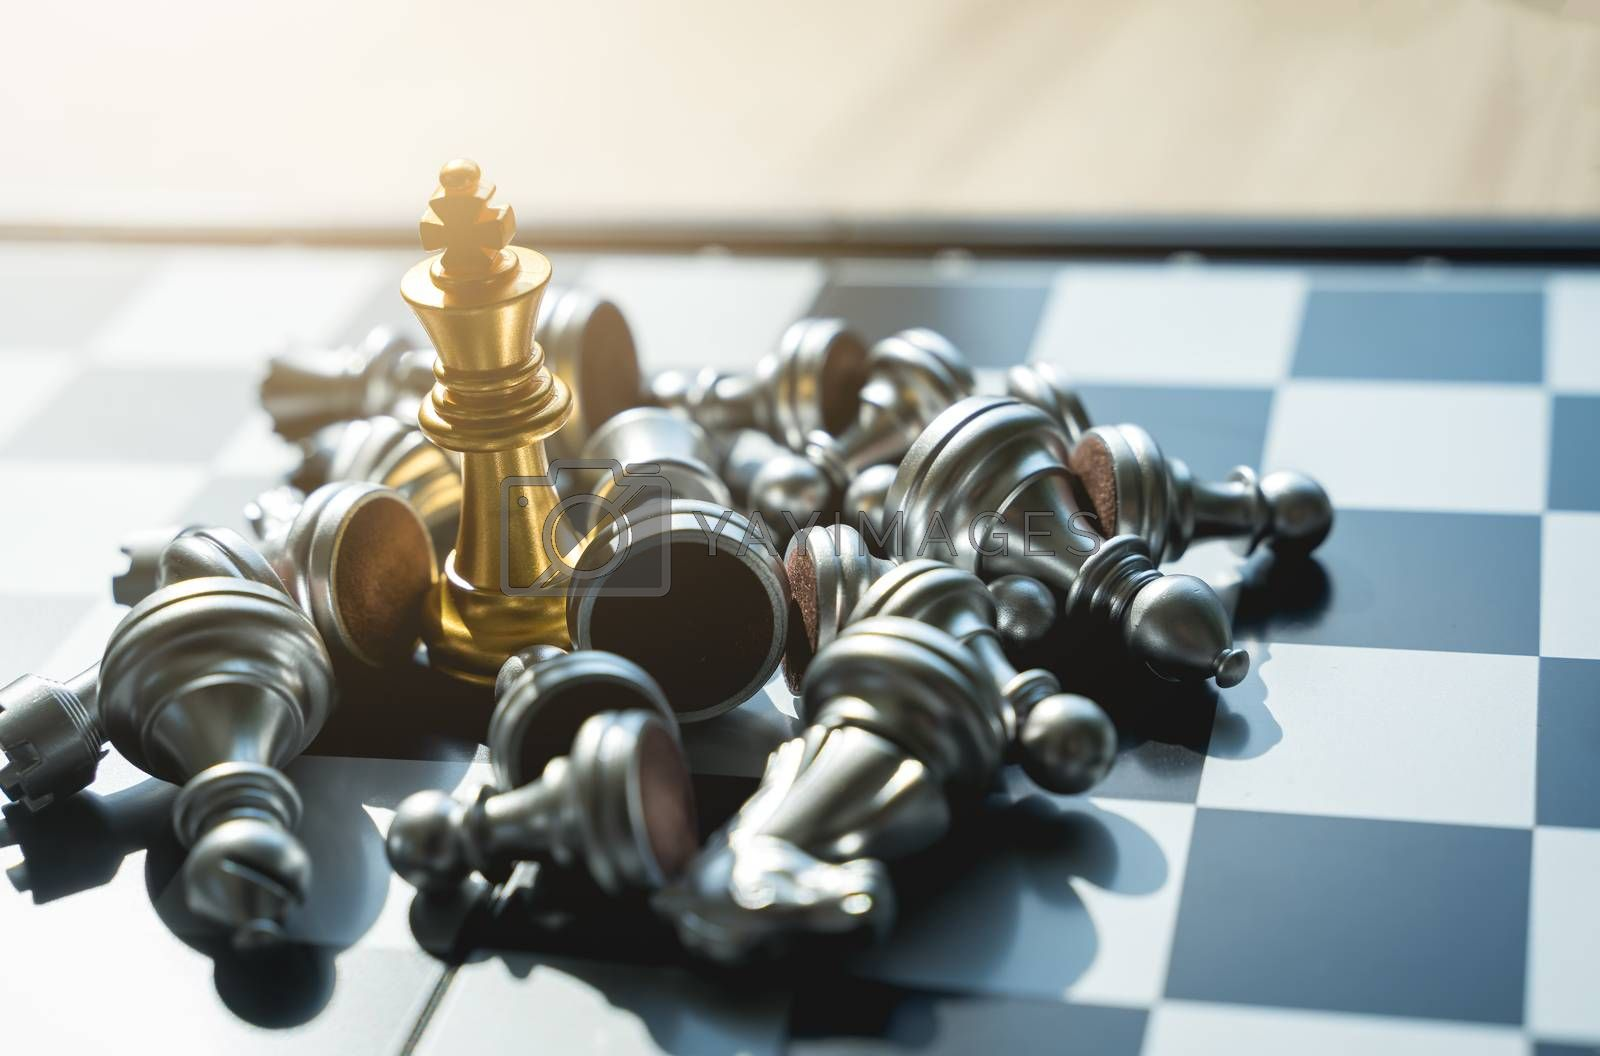 Golden King Chess wins in games with silver chess falling Defeat ed, in concept, business, victory, success and competition On the chess board with copy space selective focus at Golden King Chess